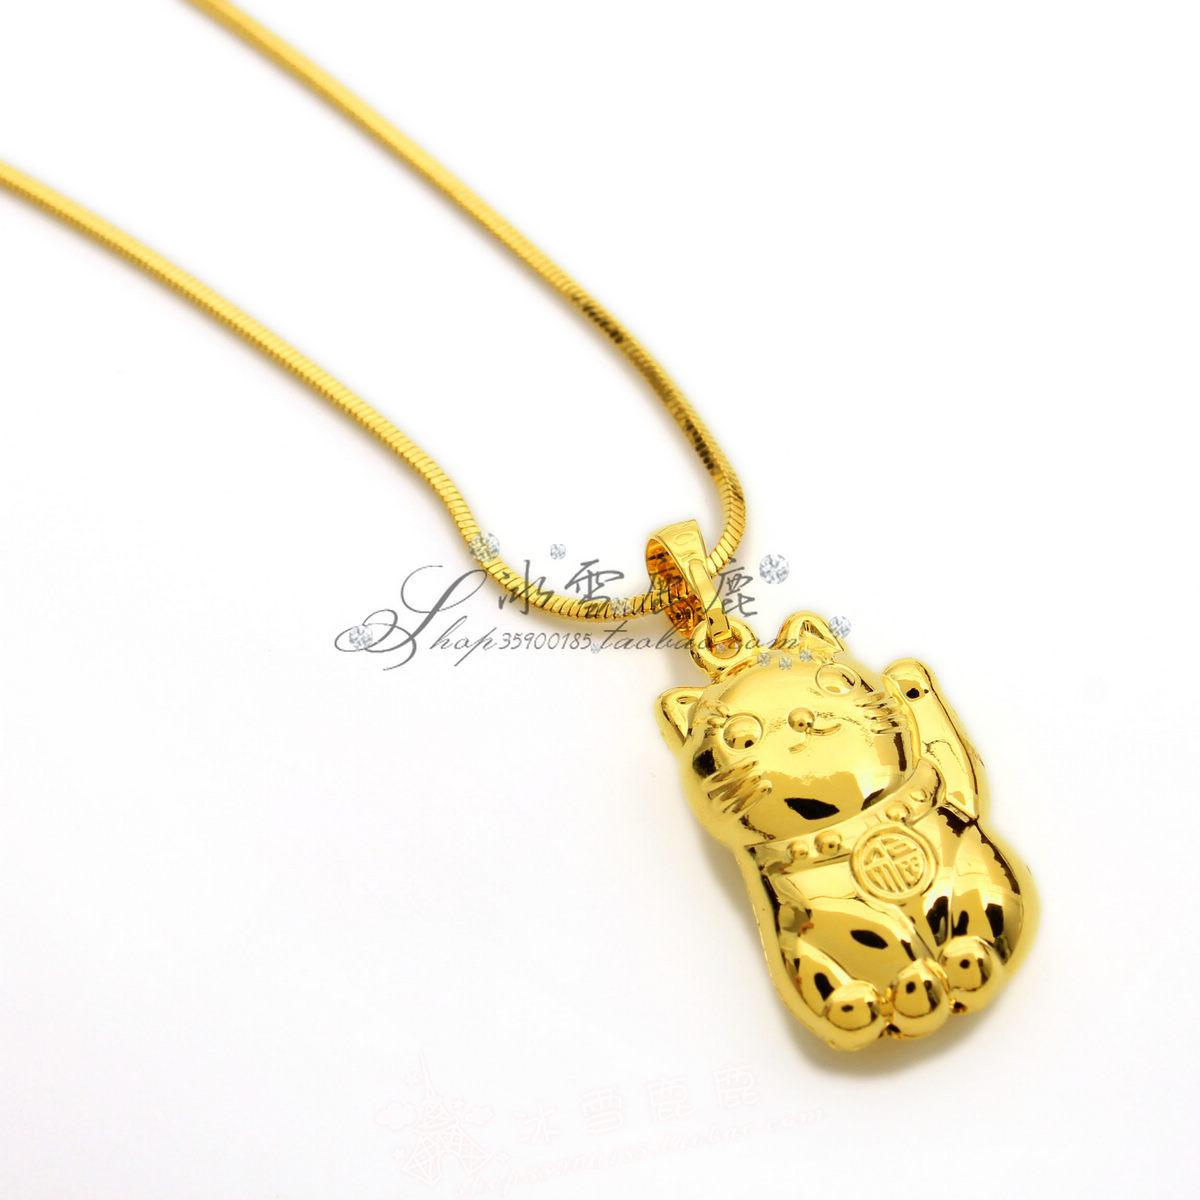 xuping gold plated imitation shape manufacturers suppliers flower and china set countrysearch cn com alibaba on jewellery